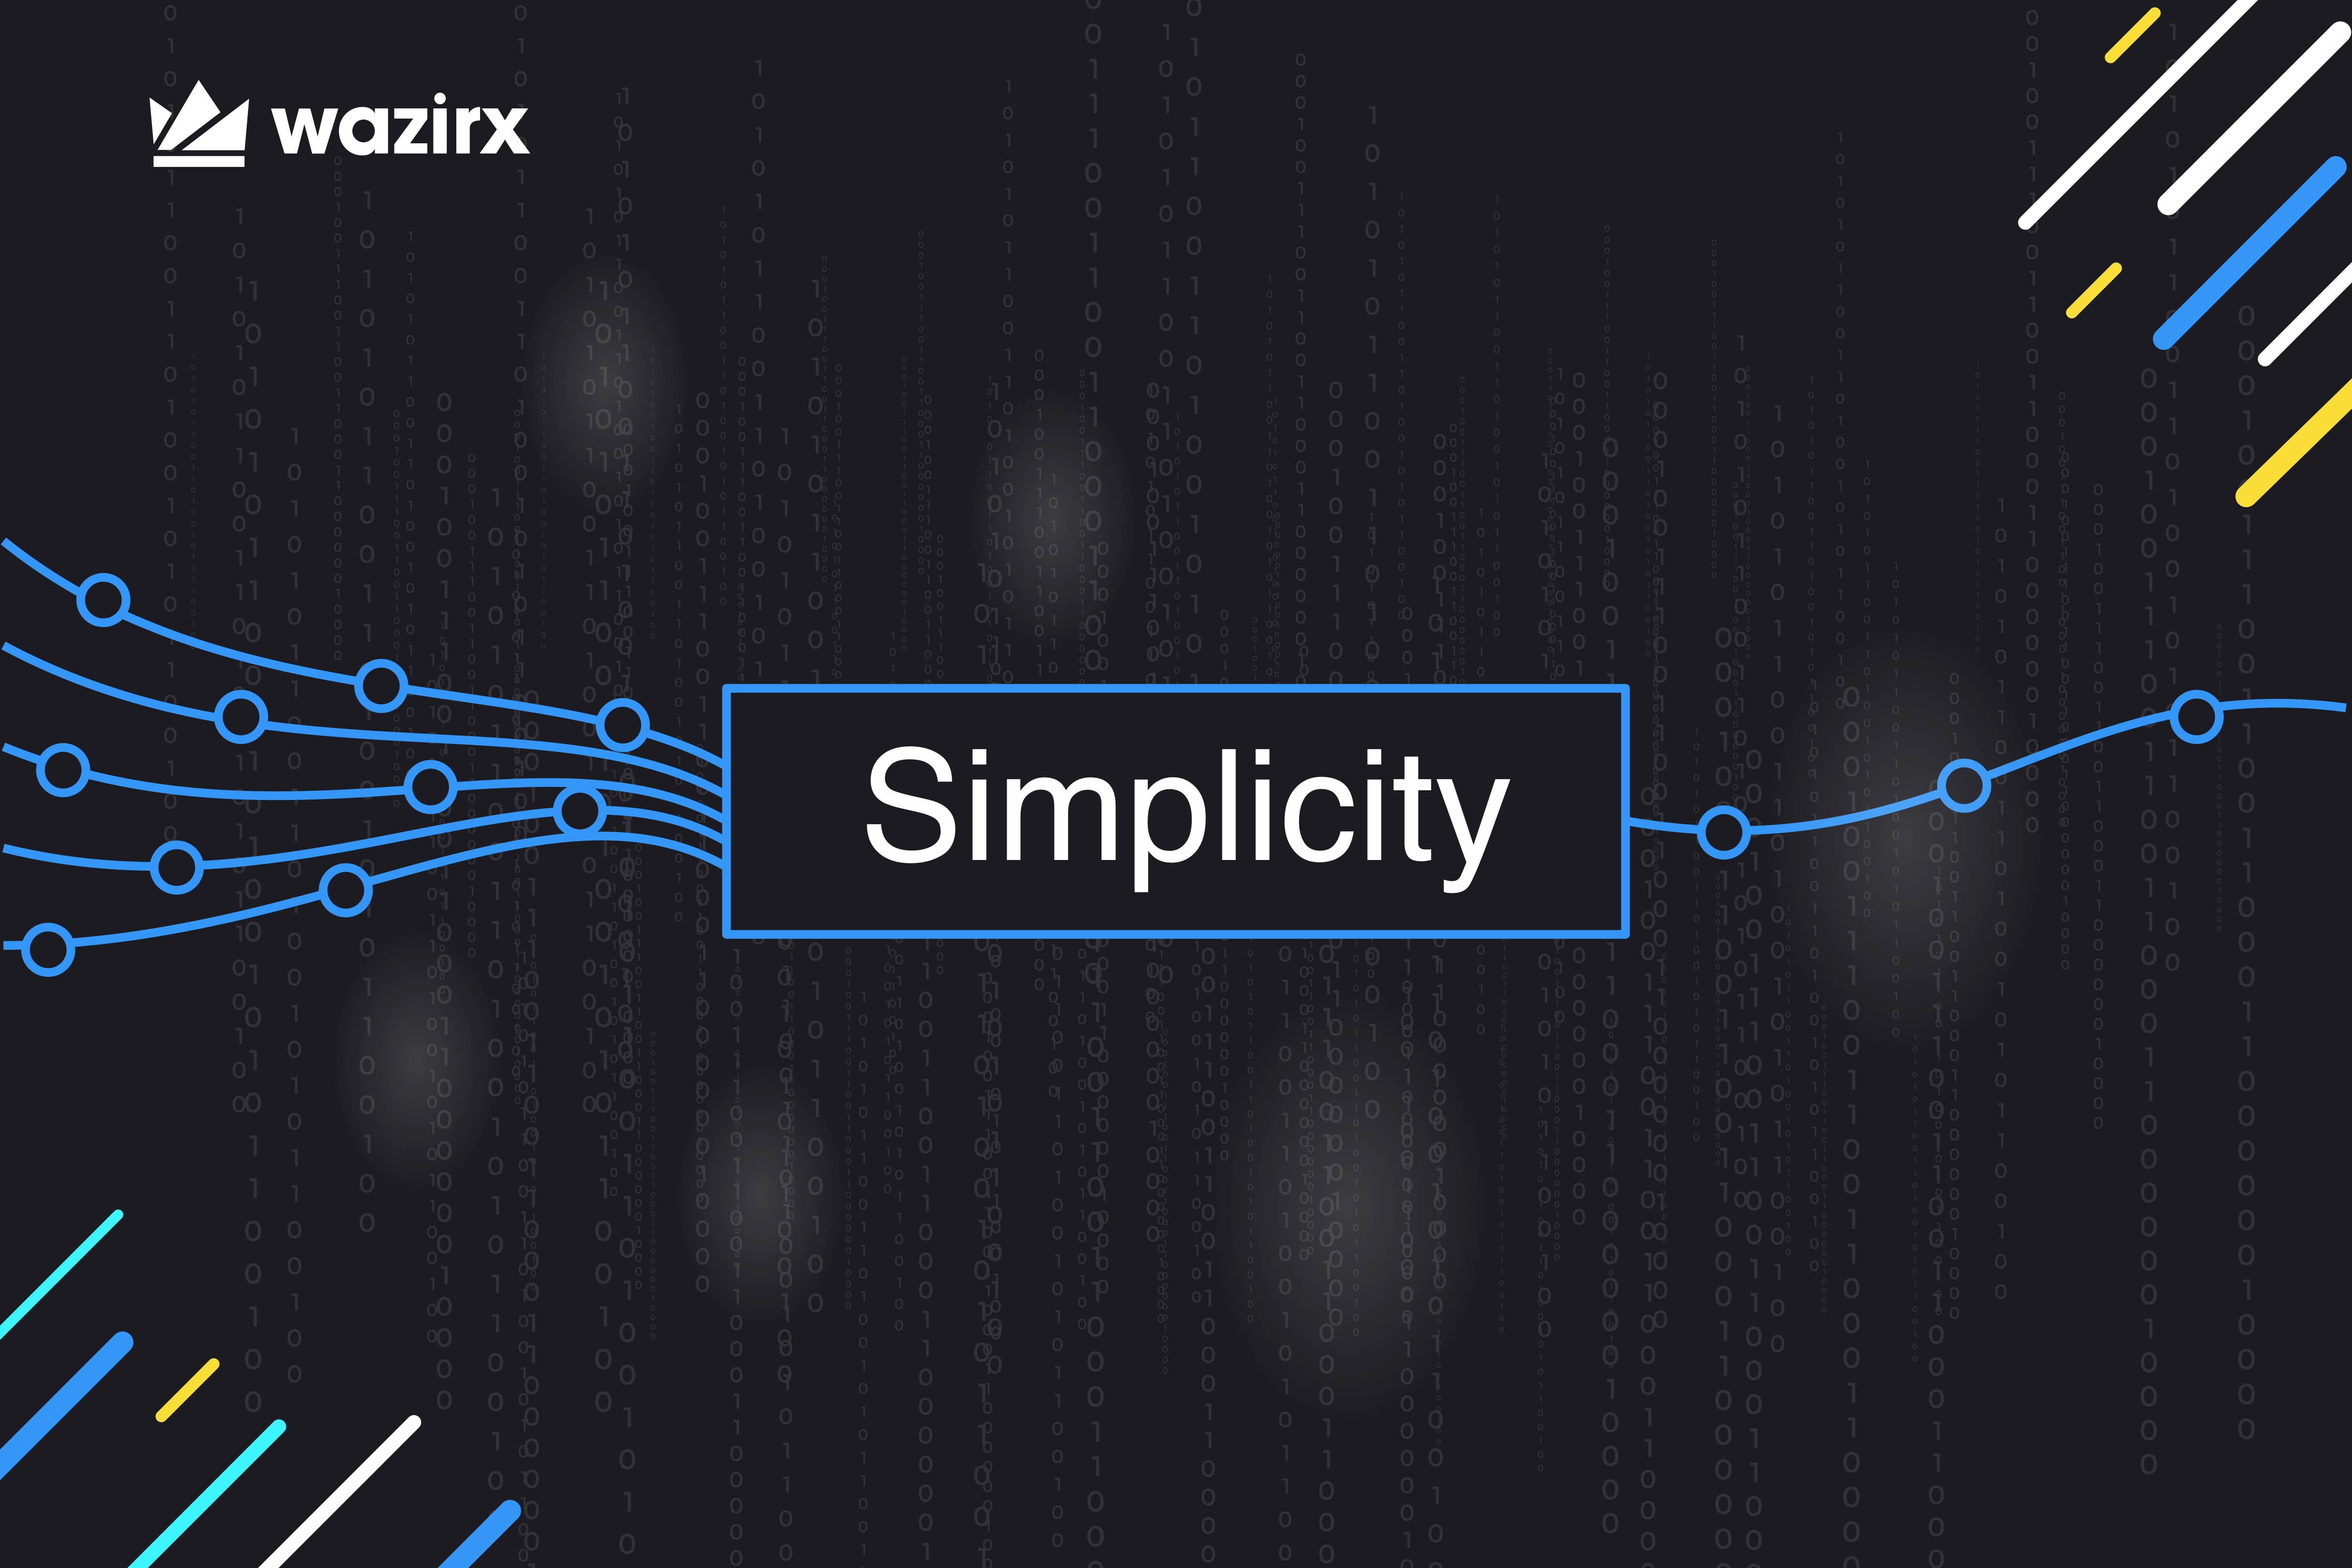 What is simplicity & What does it mean for Bitcoin - WazirX